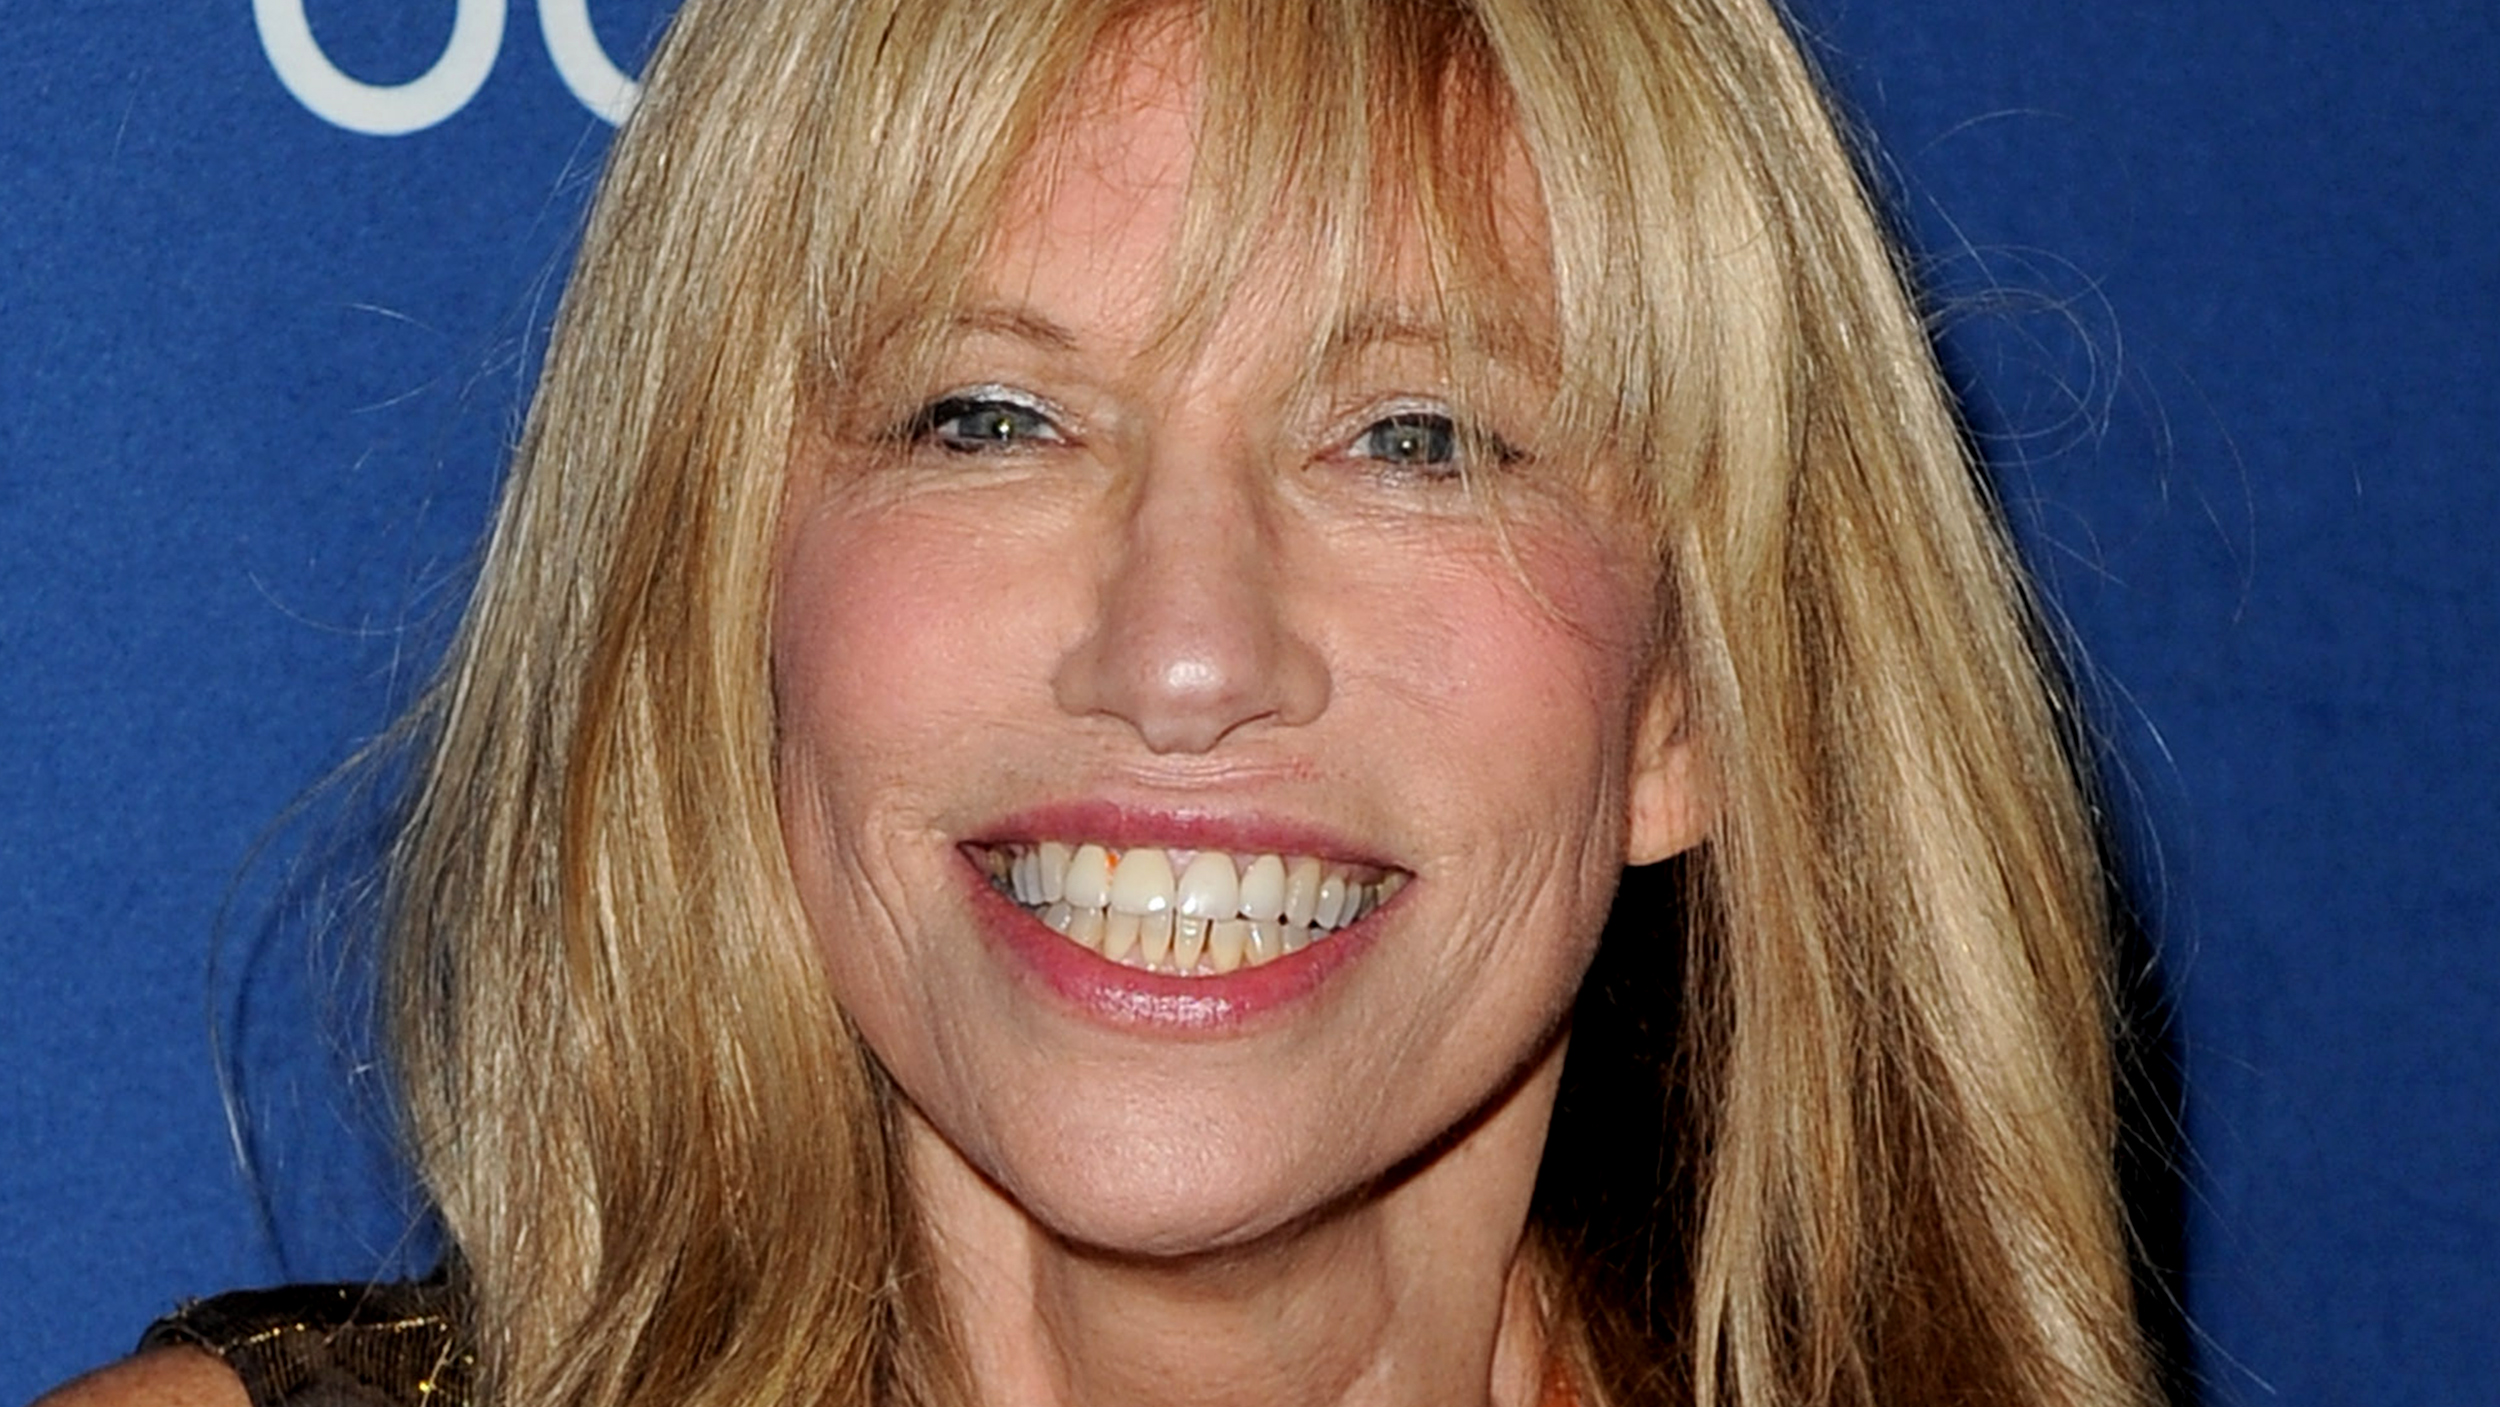 Carly Simon Says You're So Vain Second Verse Is About Carly simon photos recent